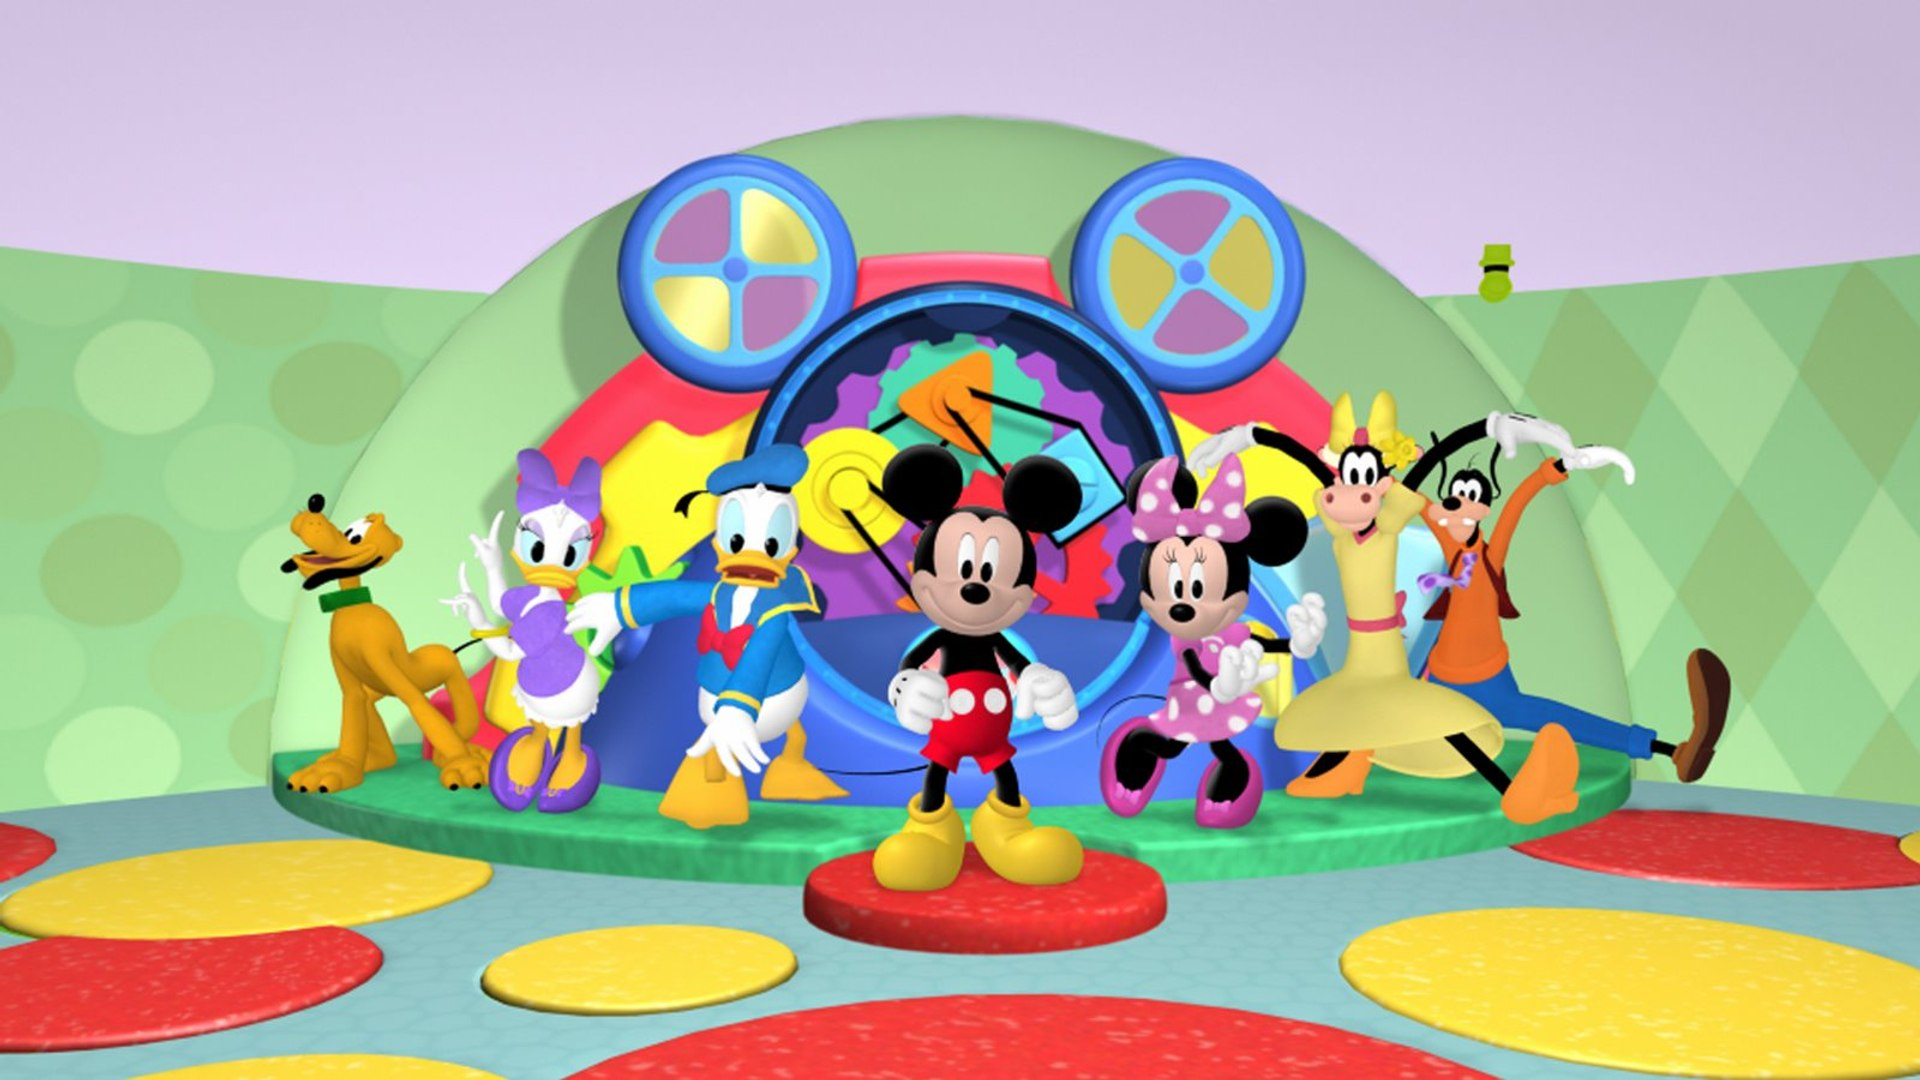 Mickey Mouse Cartoons 1 Hours Long! - Mickey mouse clubhouse 2015 new  episodes - Video Dailymotion